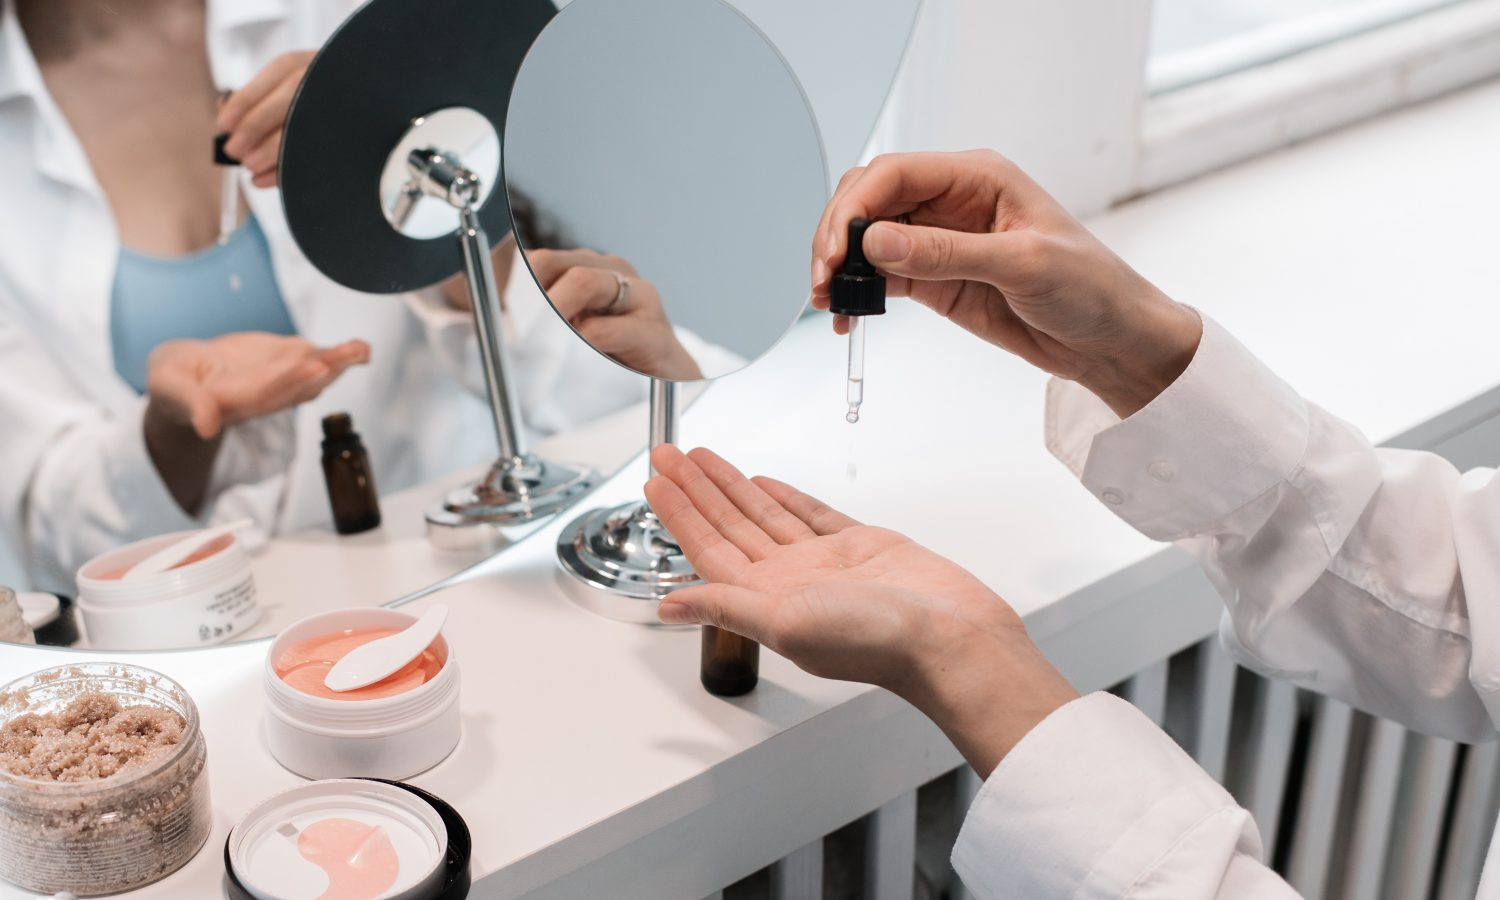 EU Adds CBD To Its List Of Legal Cosmetic Ingredients